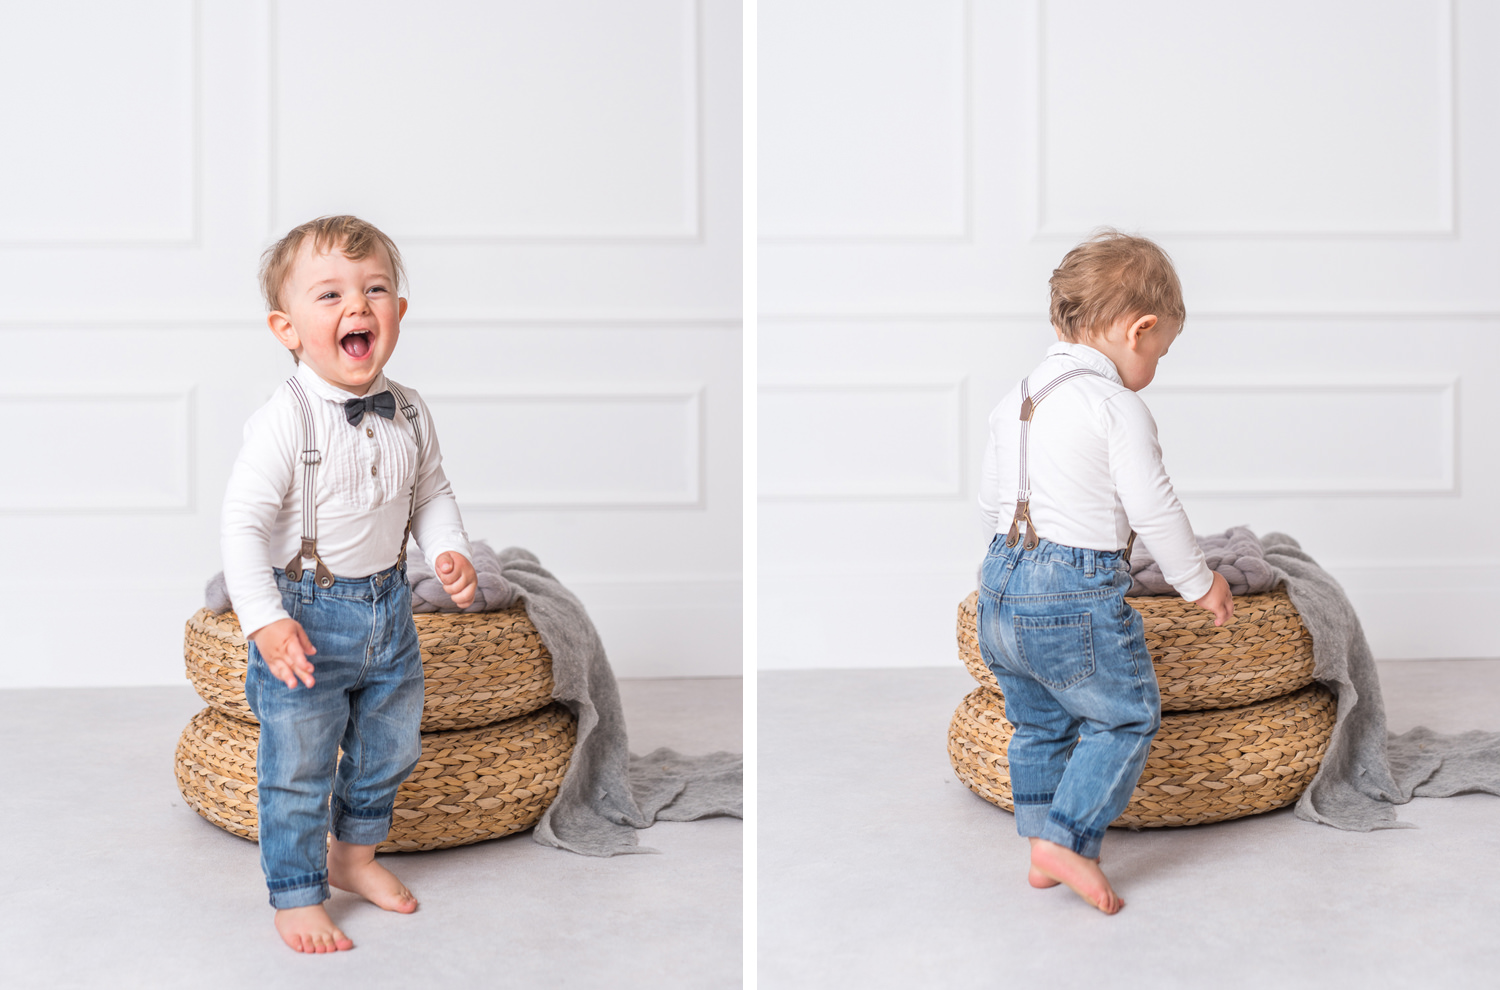 Kids photography studio Stockholm